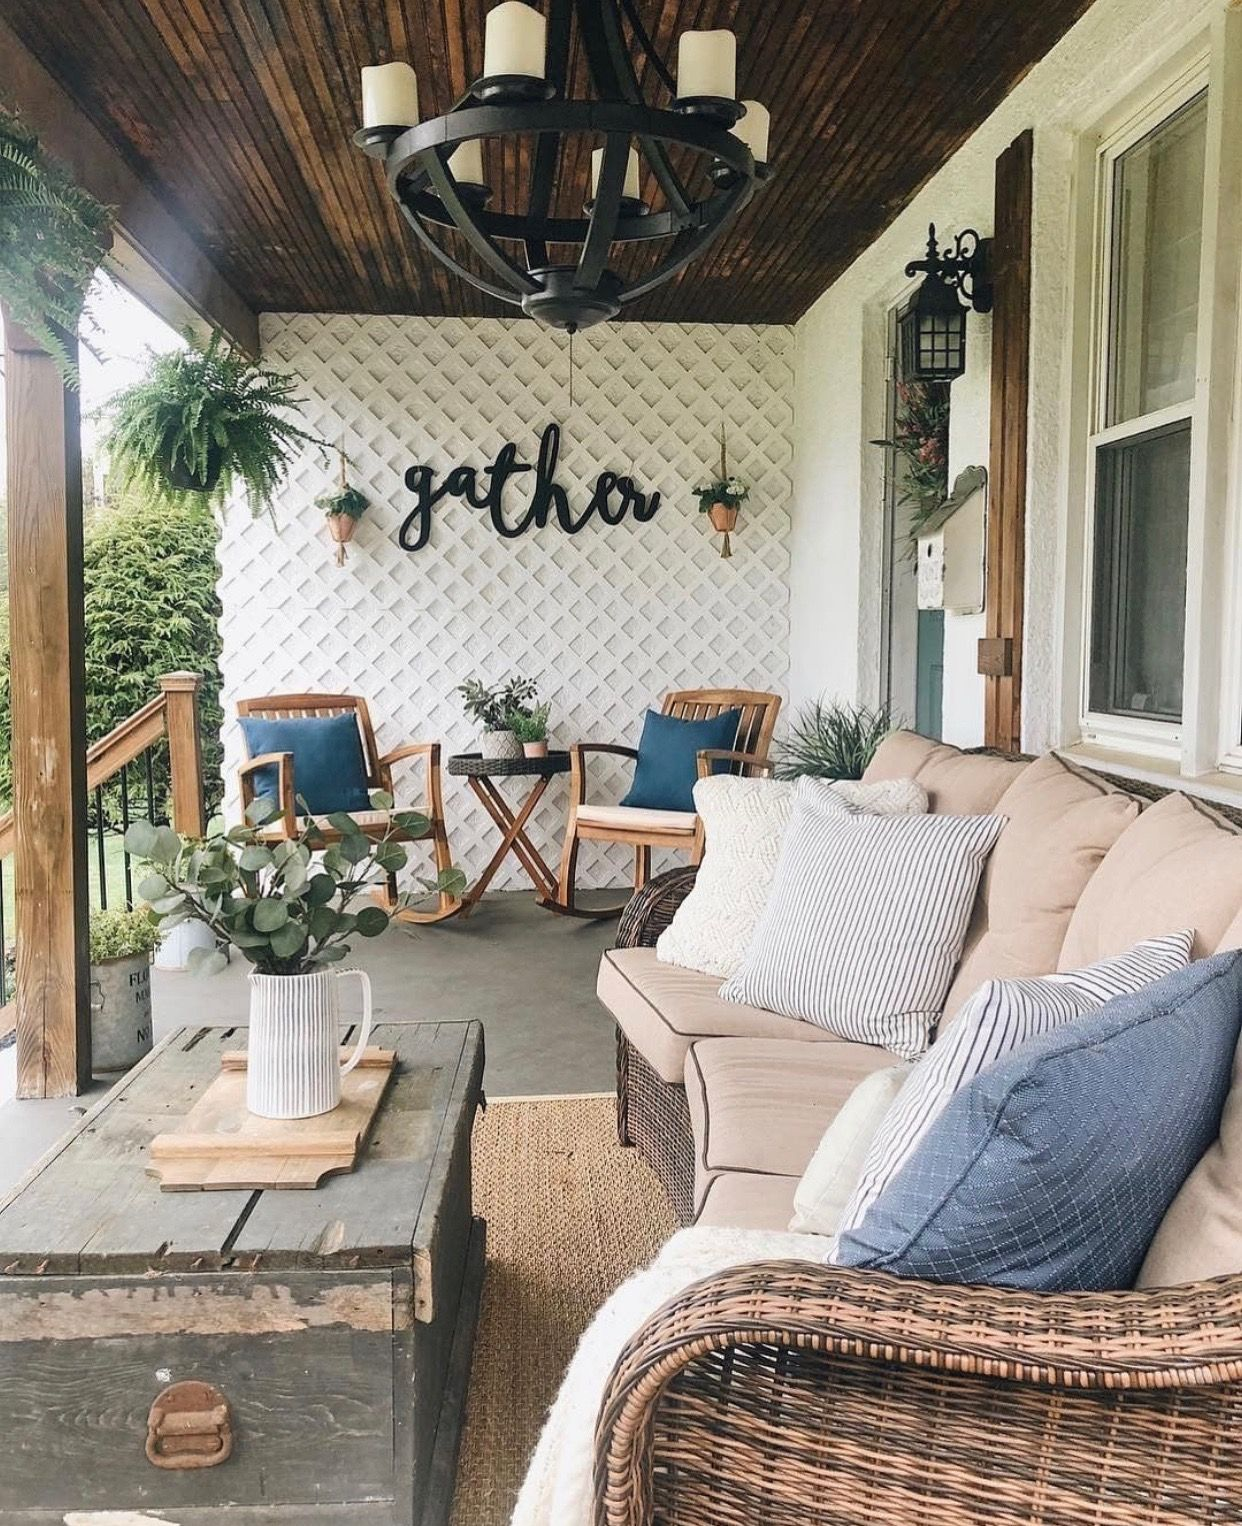 Country style porch decorated with wood furniture and